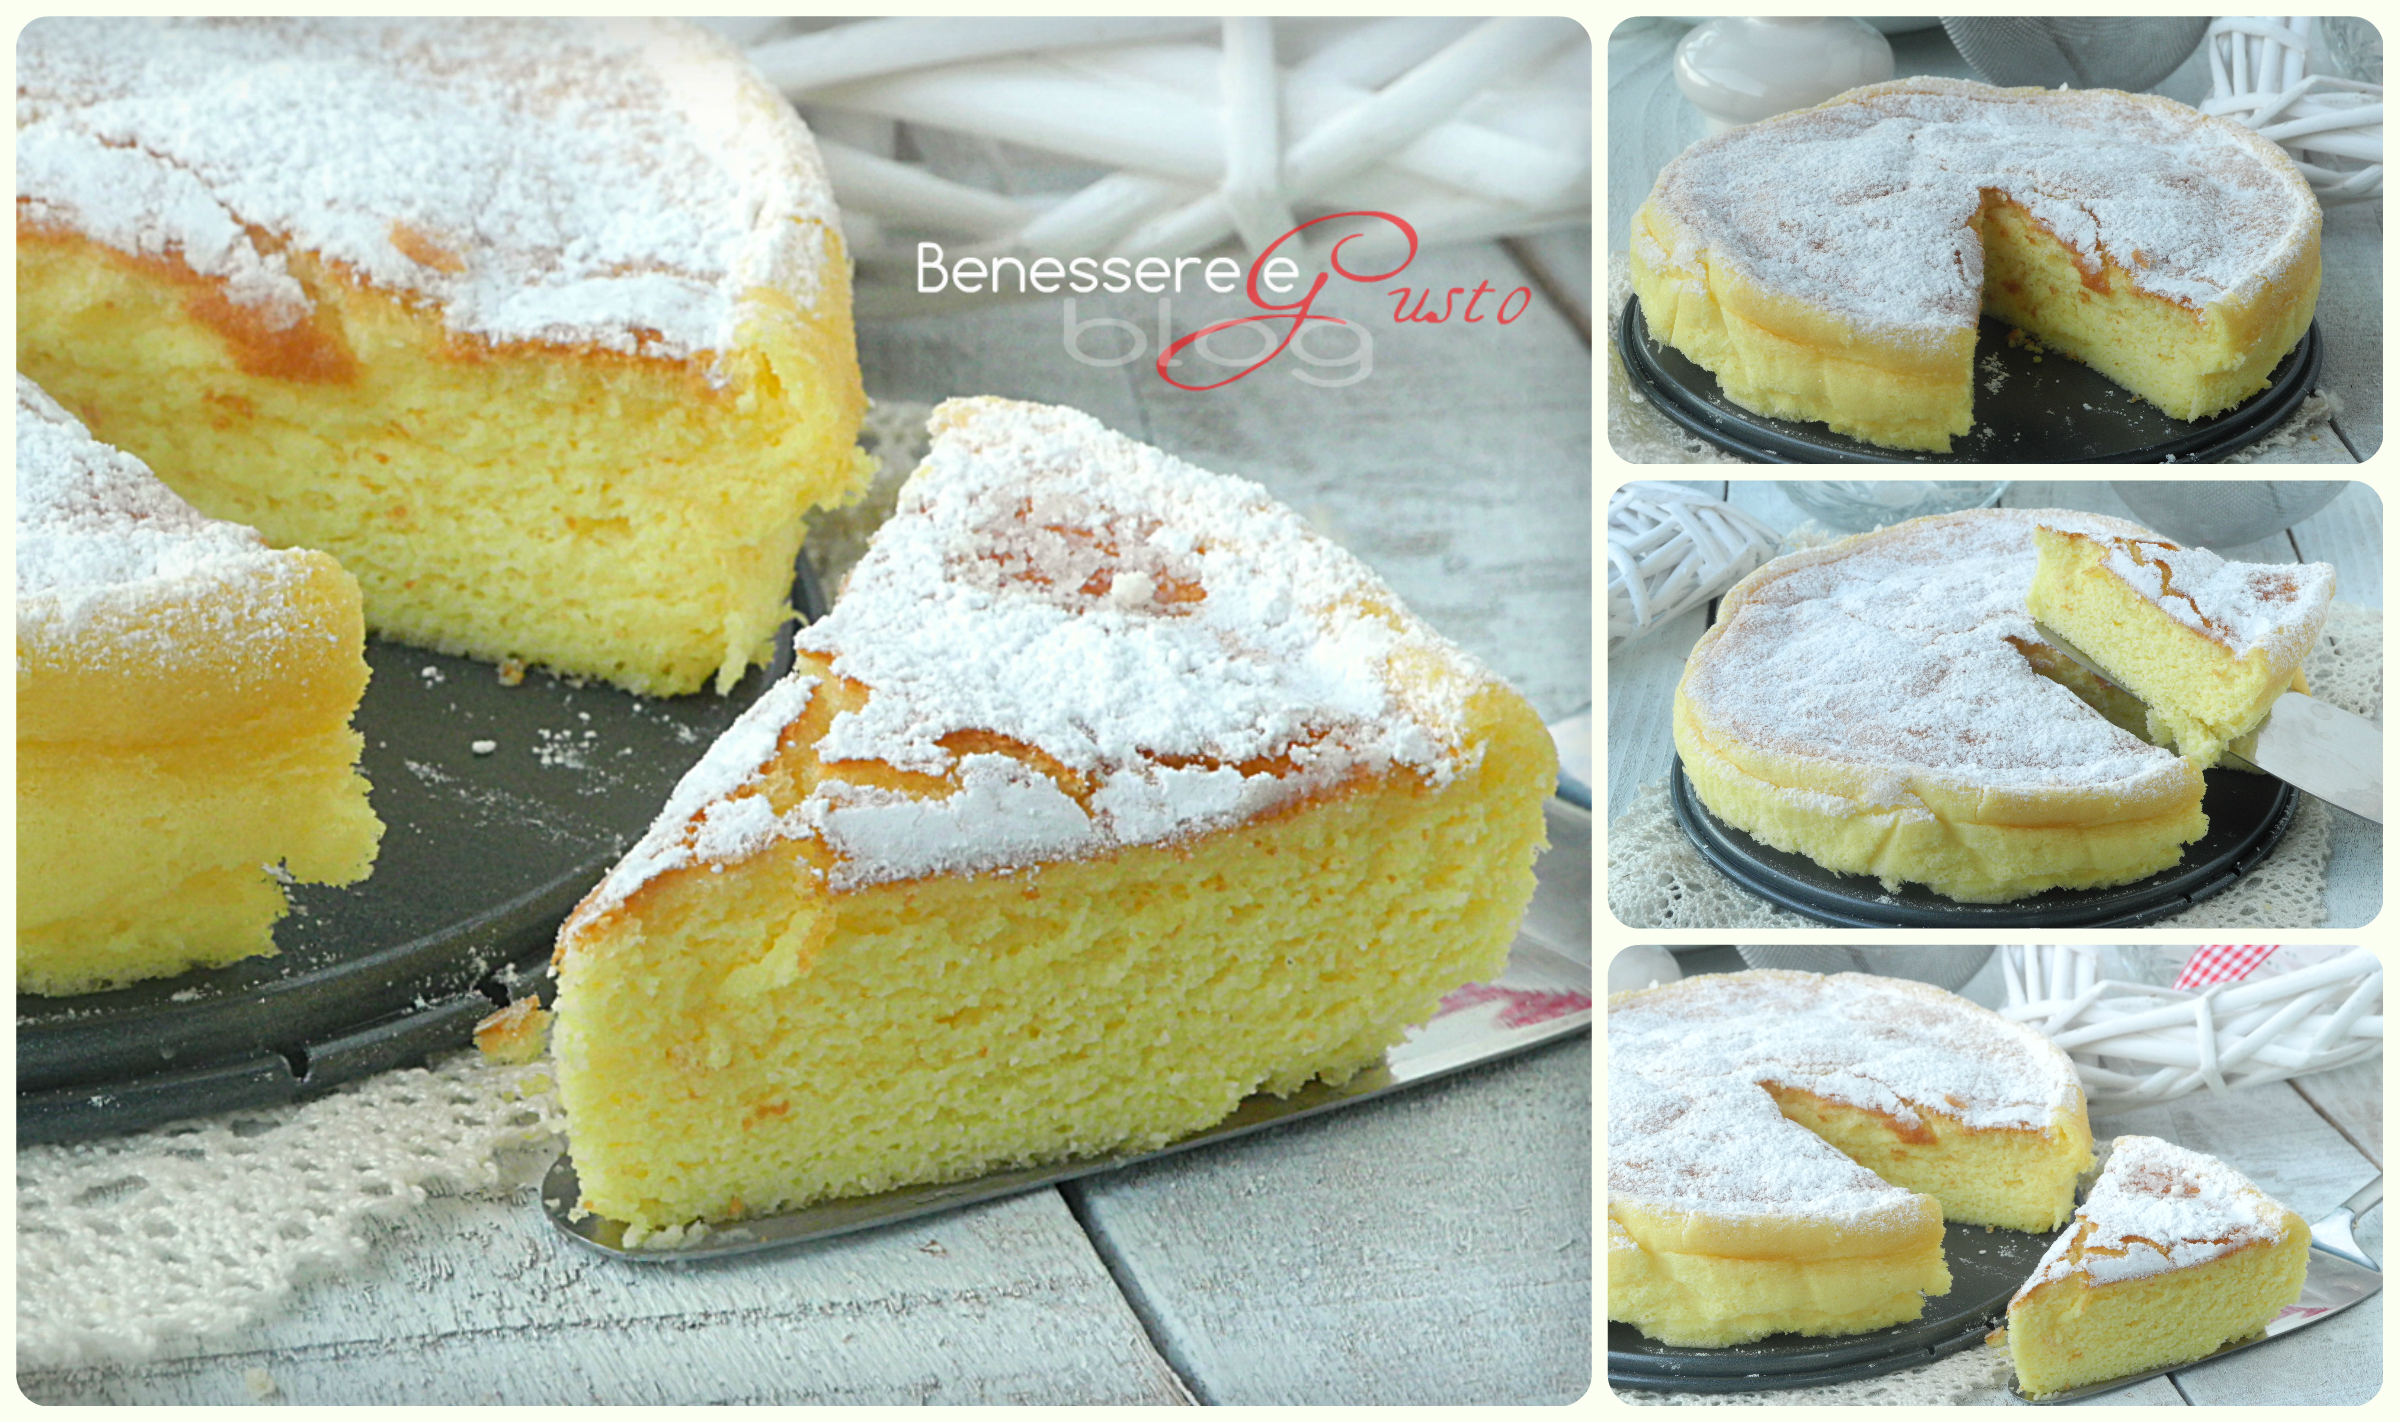 CHEESECAKE GIAPPONESE TRE INGREDIENTI